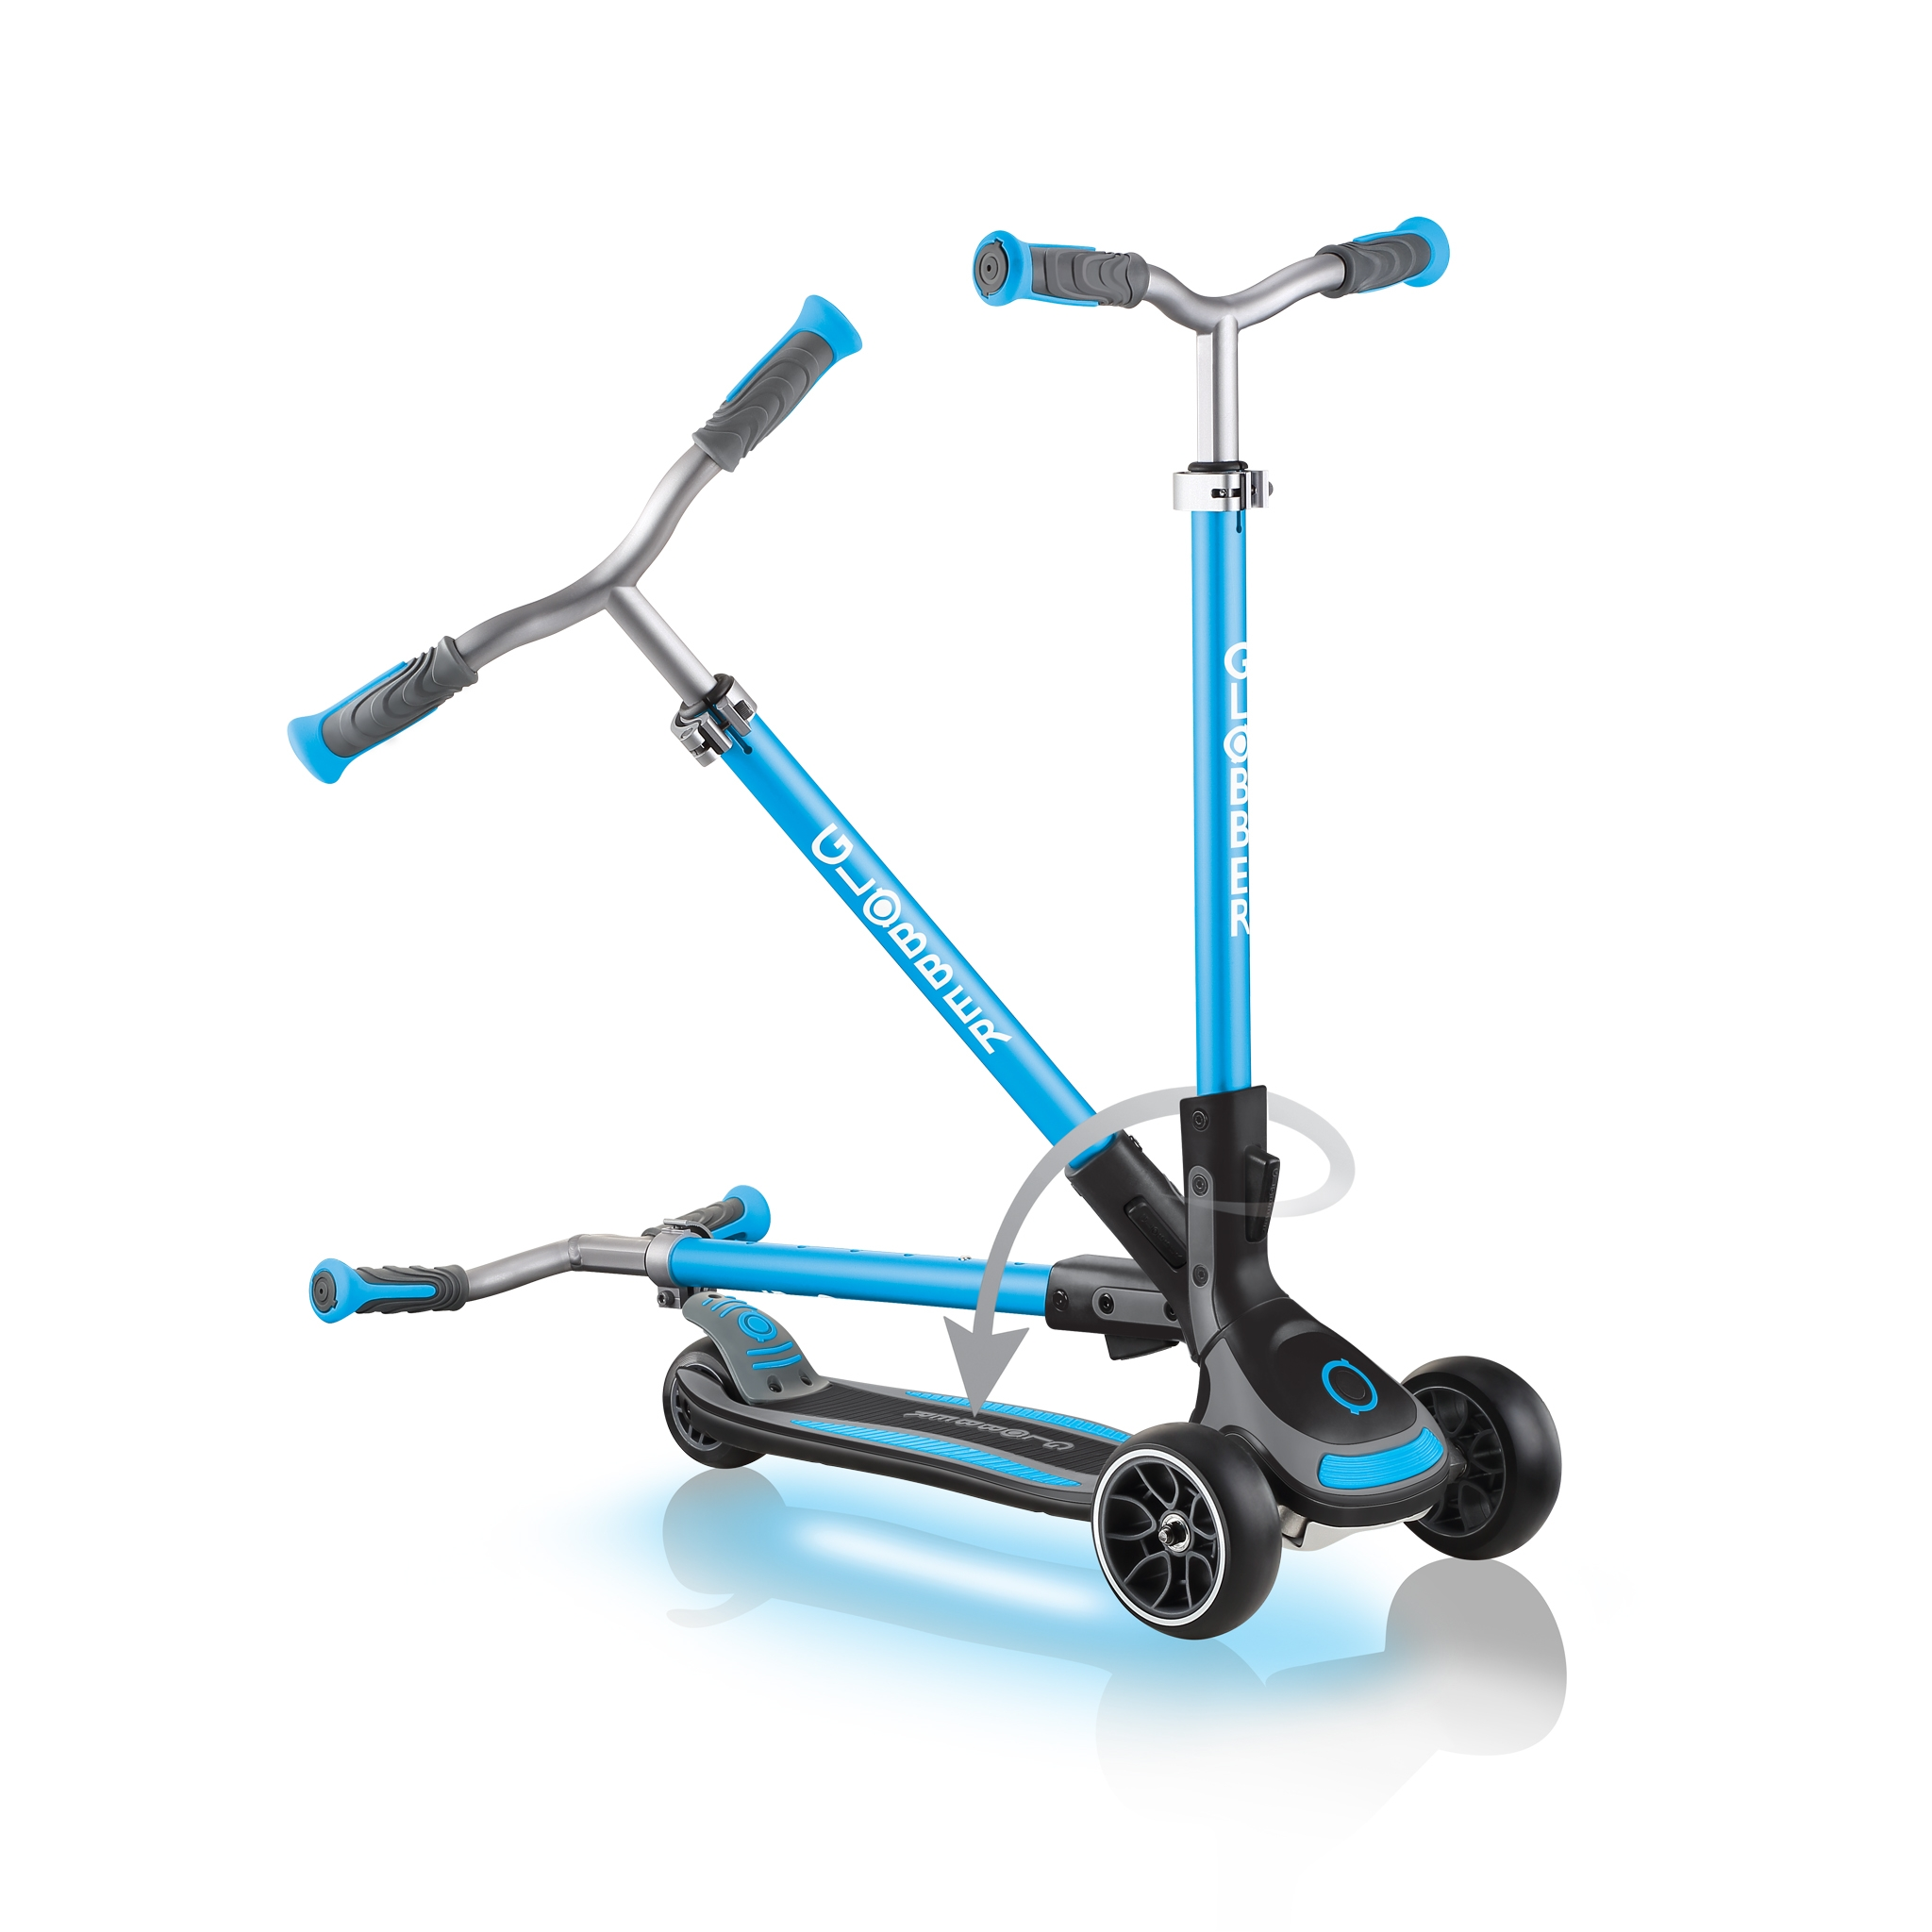 ULTIMUM-LIGHTS-folding-scooter-for-kids-and-teens-sky-blue